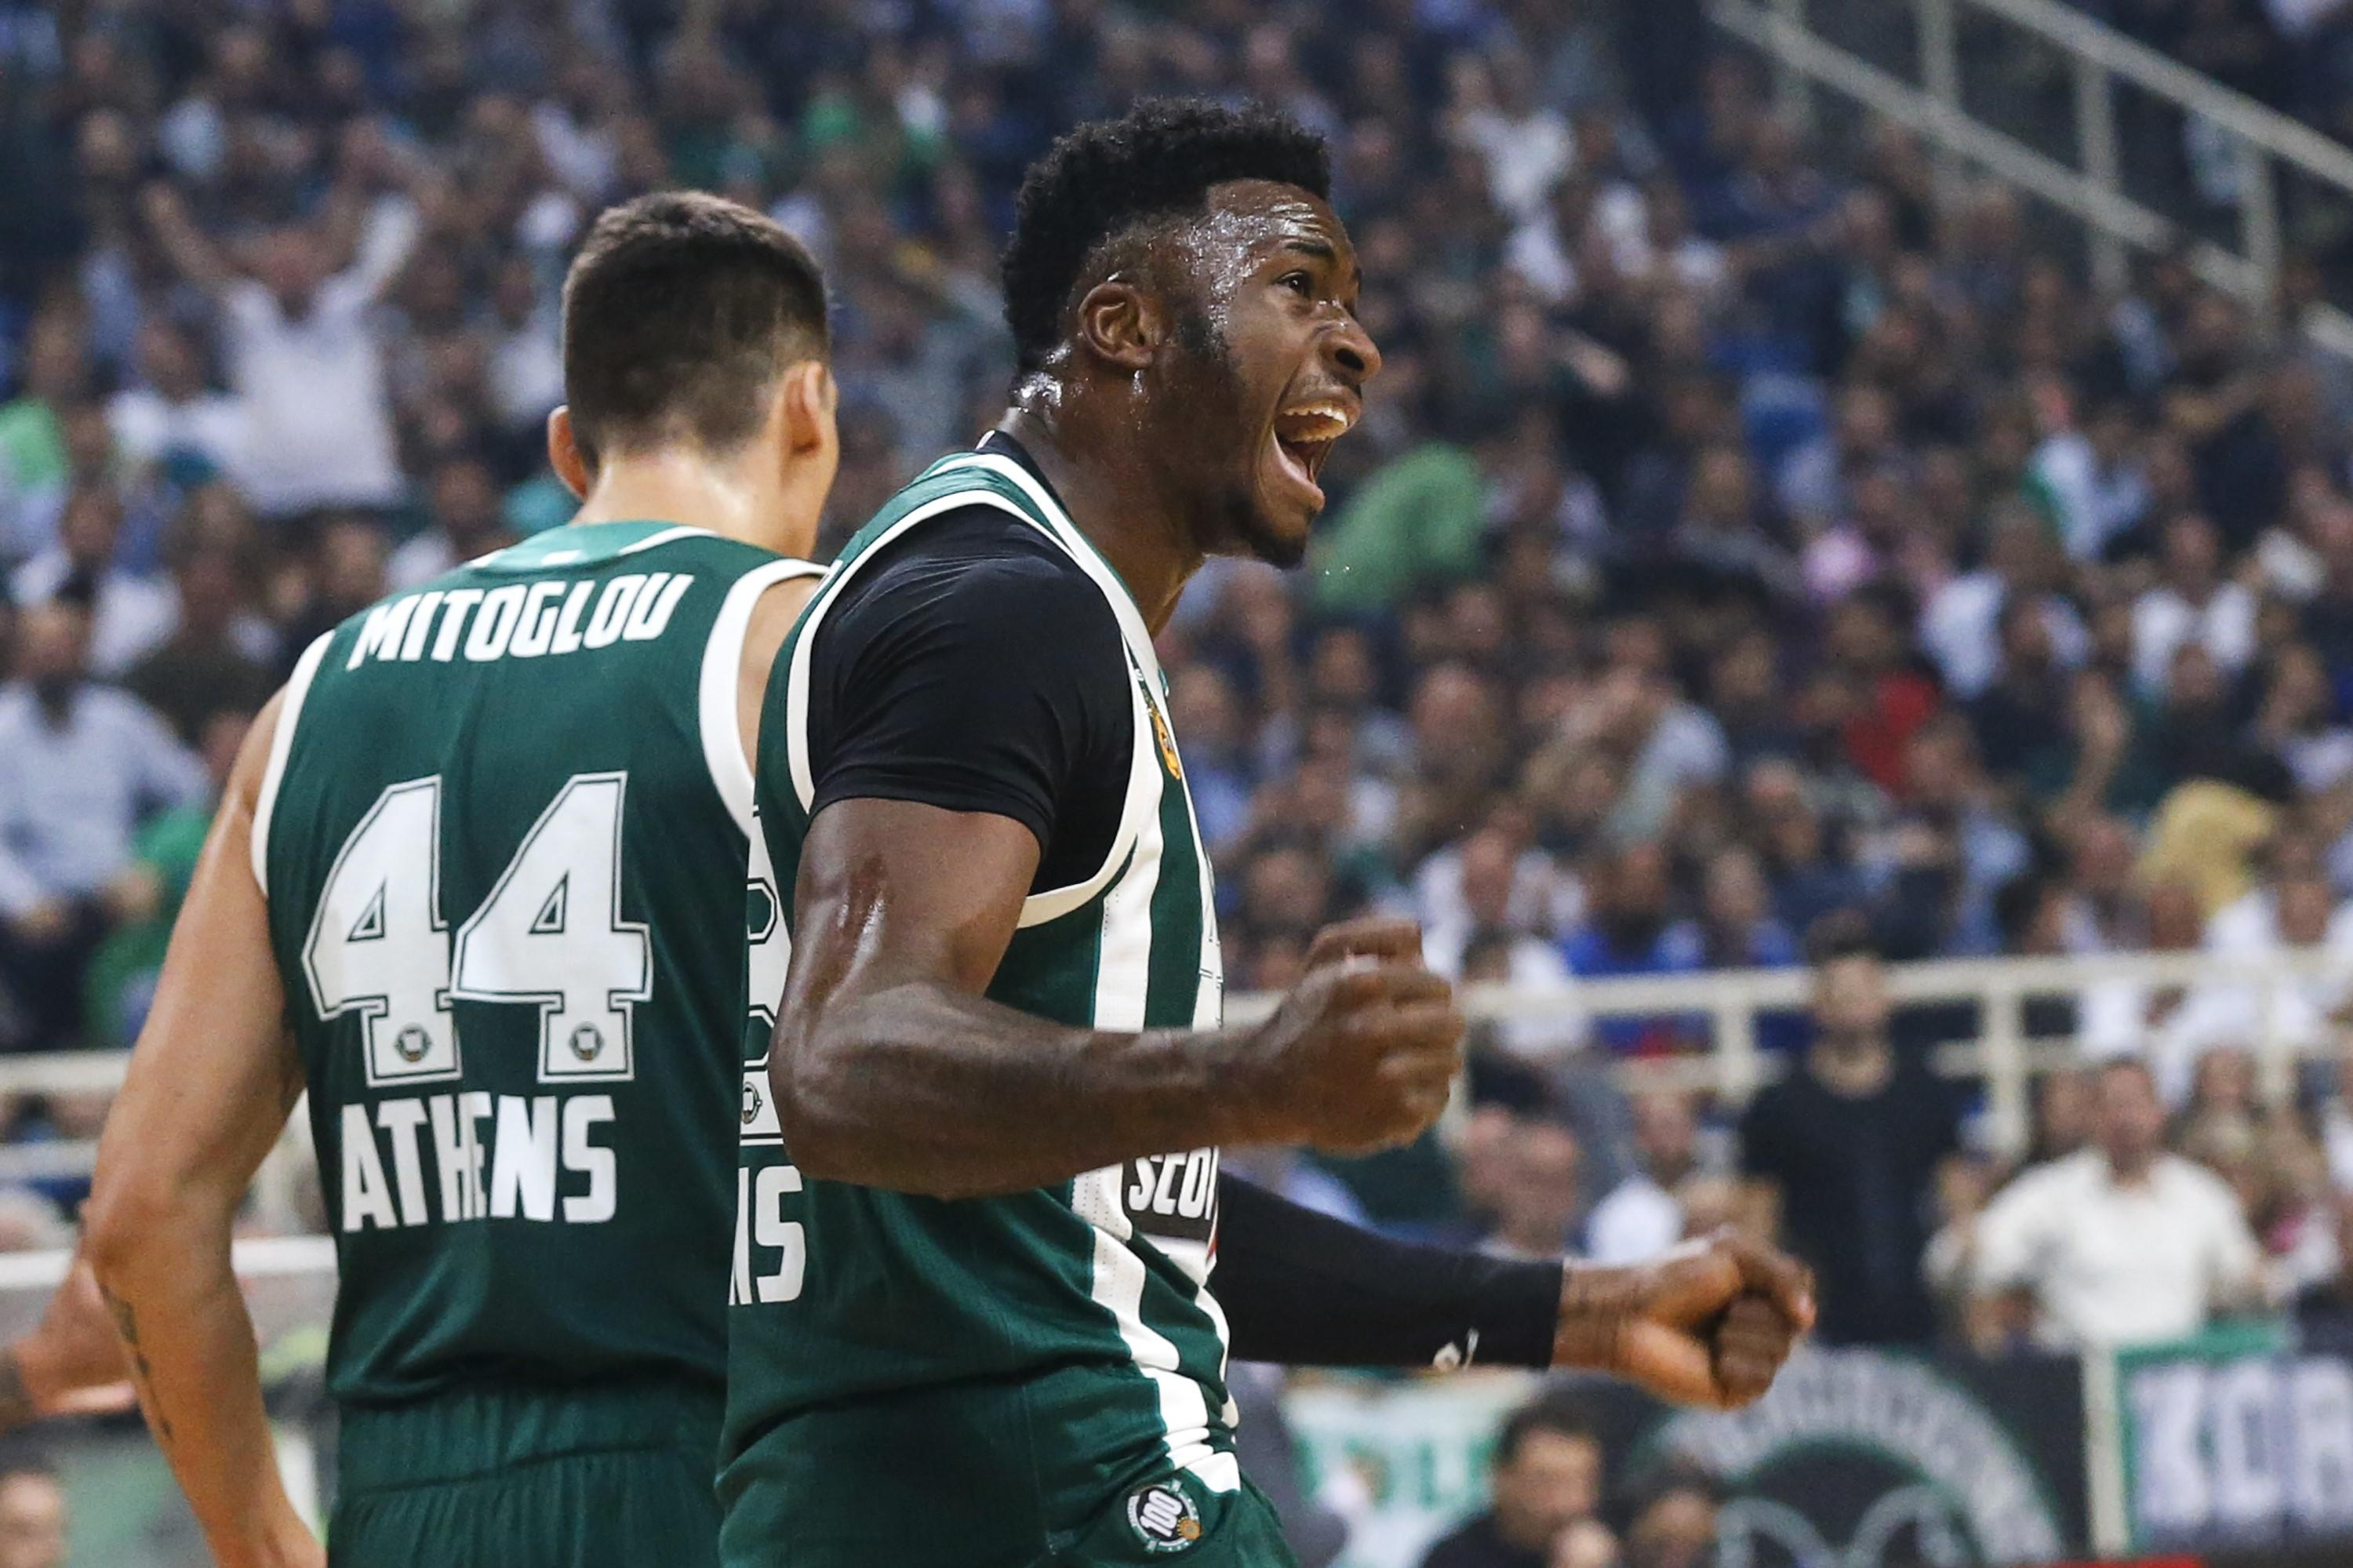 Thanasis Antetokounmpo agrees to deal with Bucks